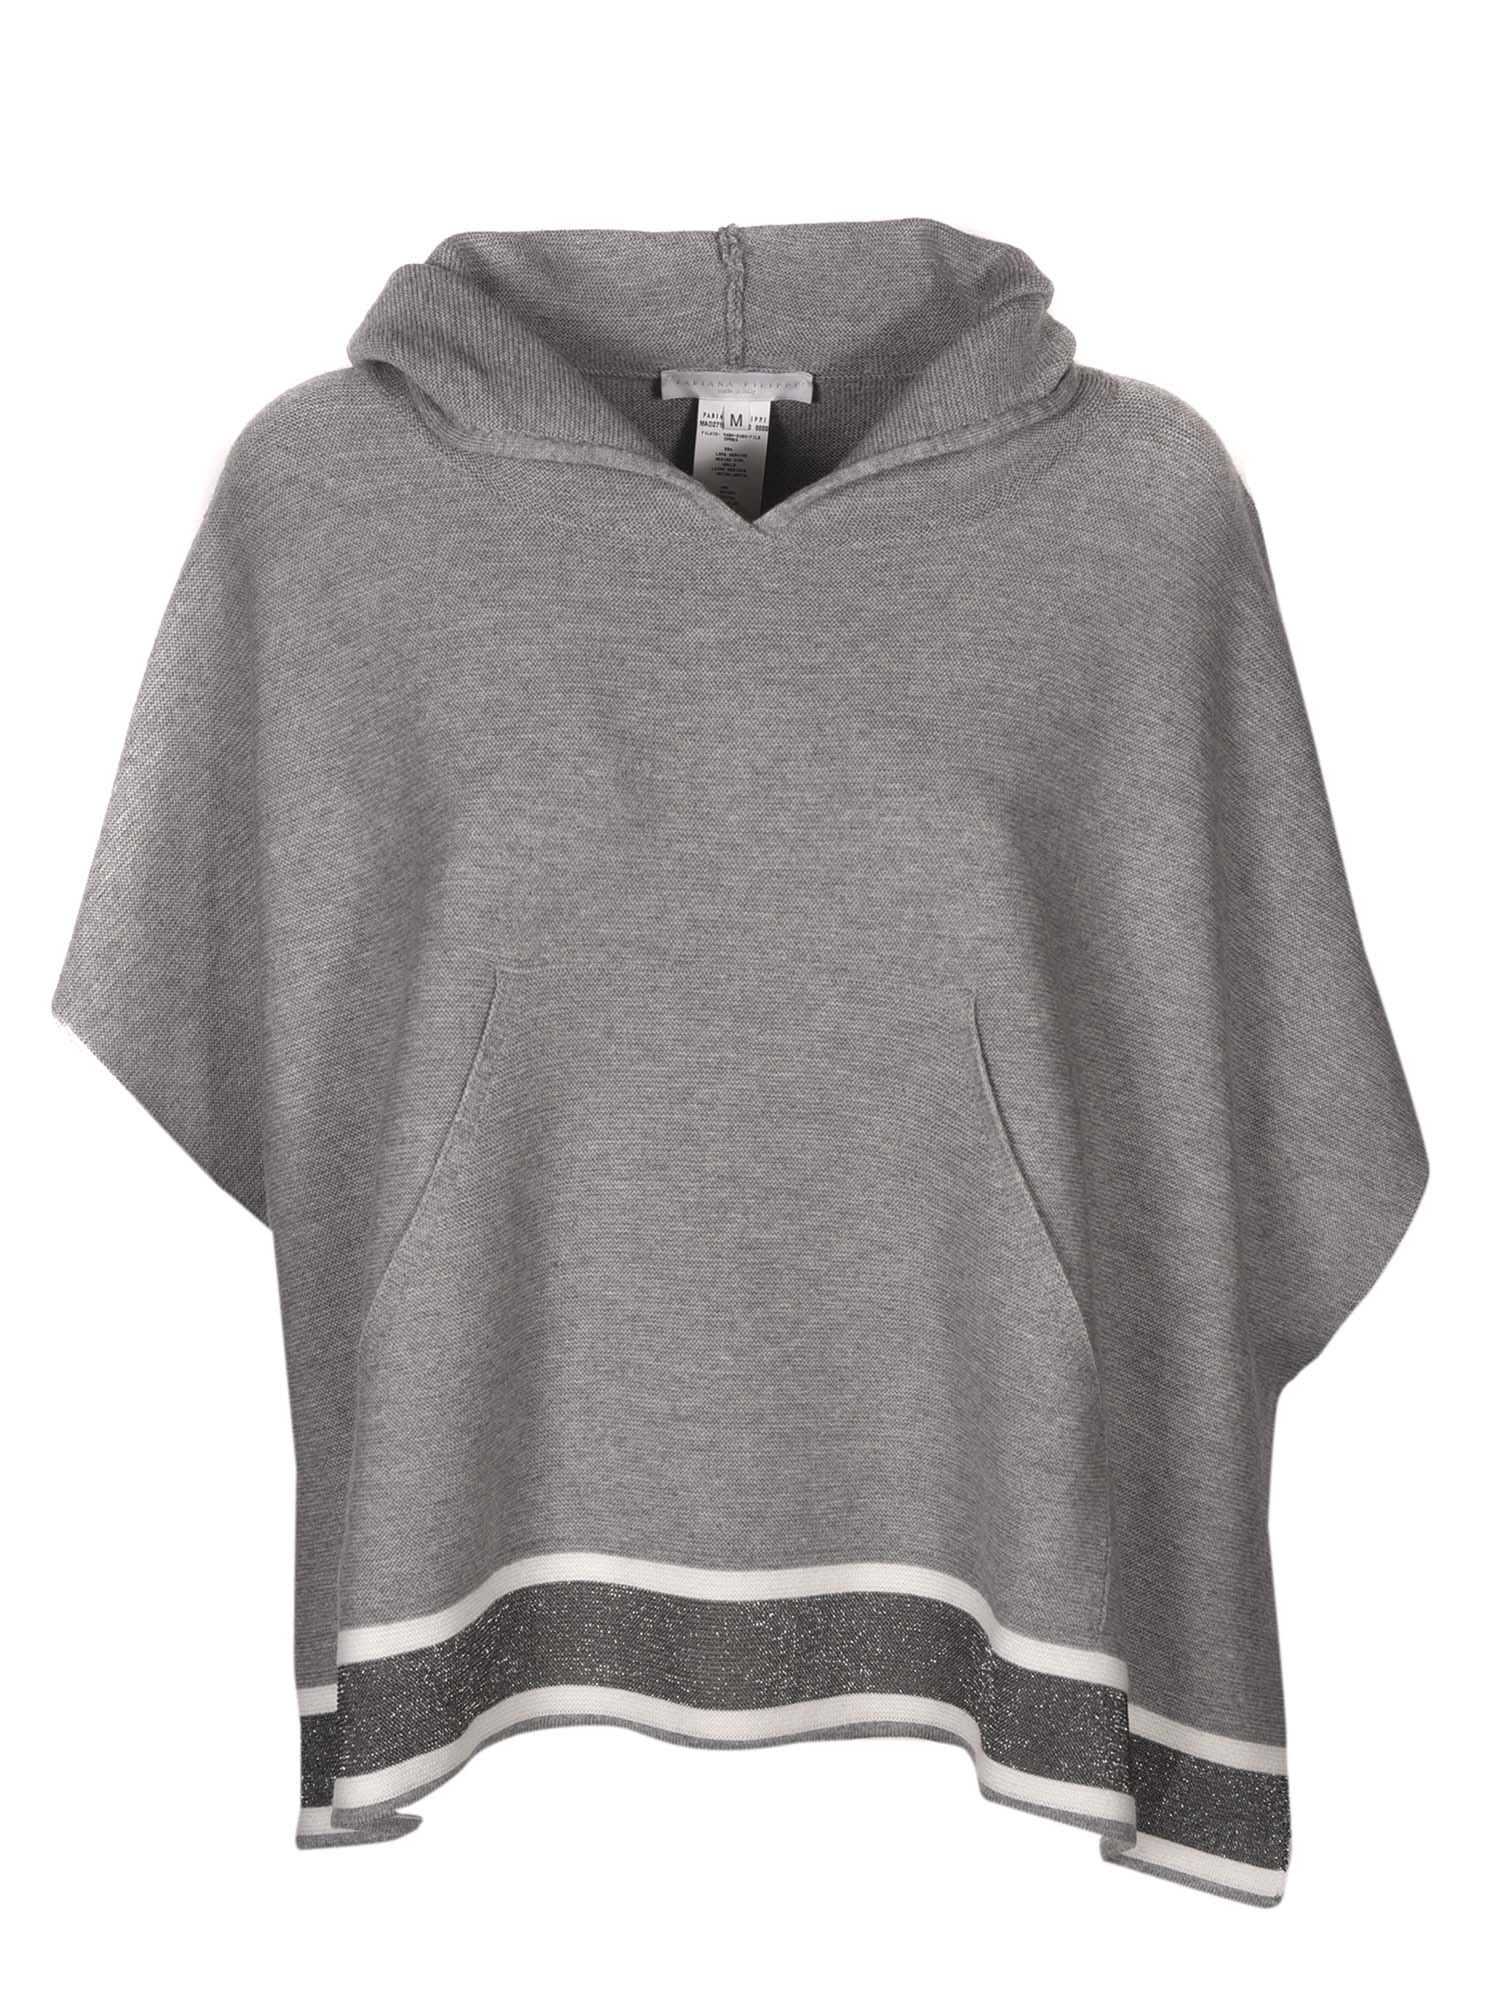 Fabiana Filippi WOOL SWEATER IN GREY